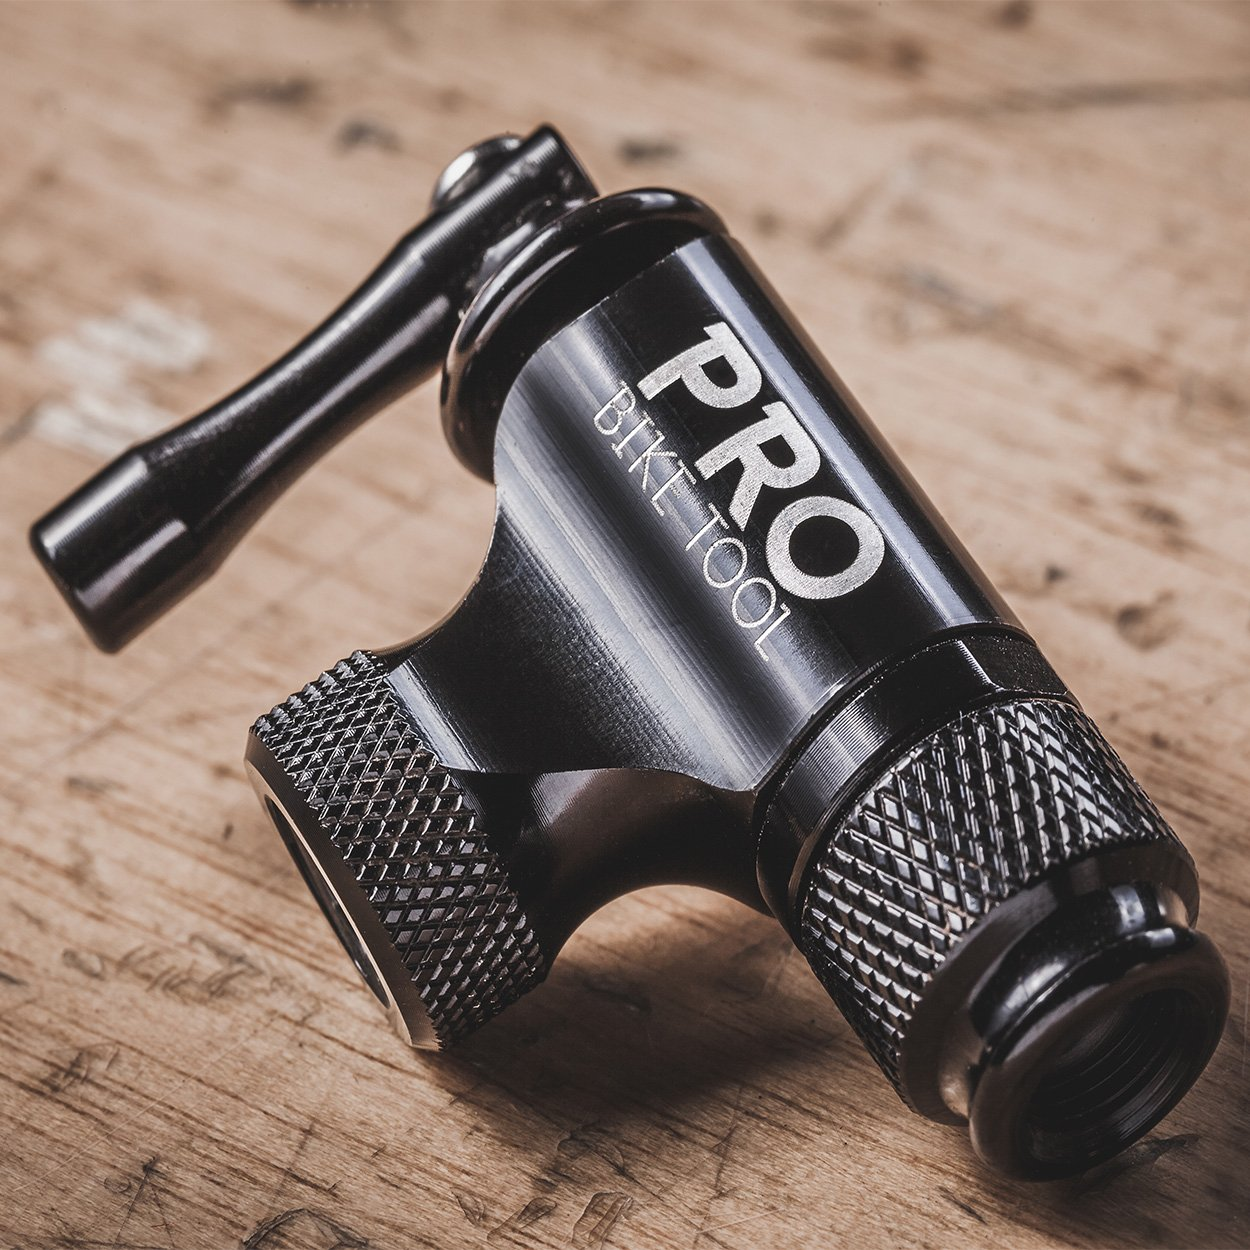 Presta and Schrader Valve Compatible PRO BIKE TOOL CO2 Inflator Quick /& Easy